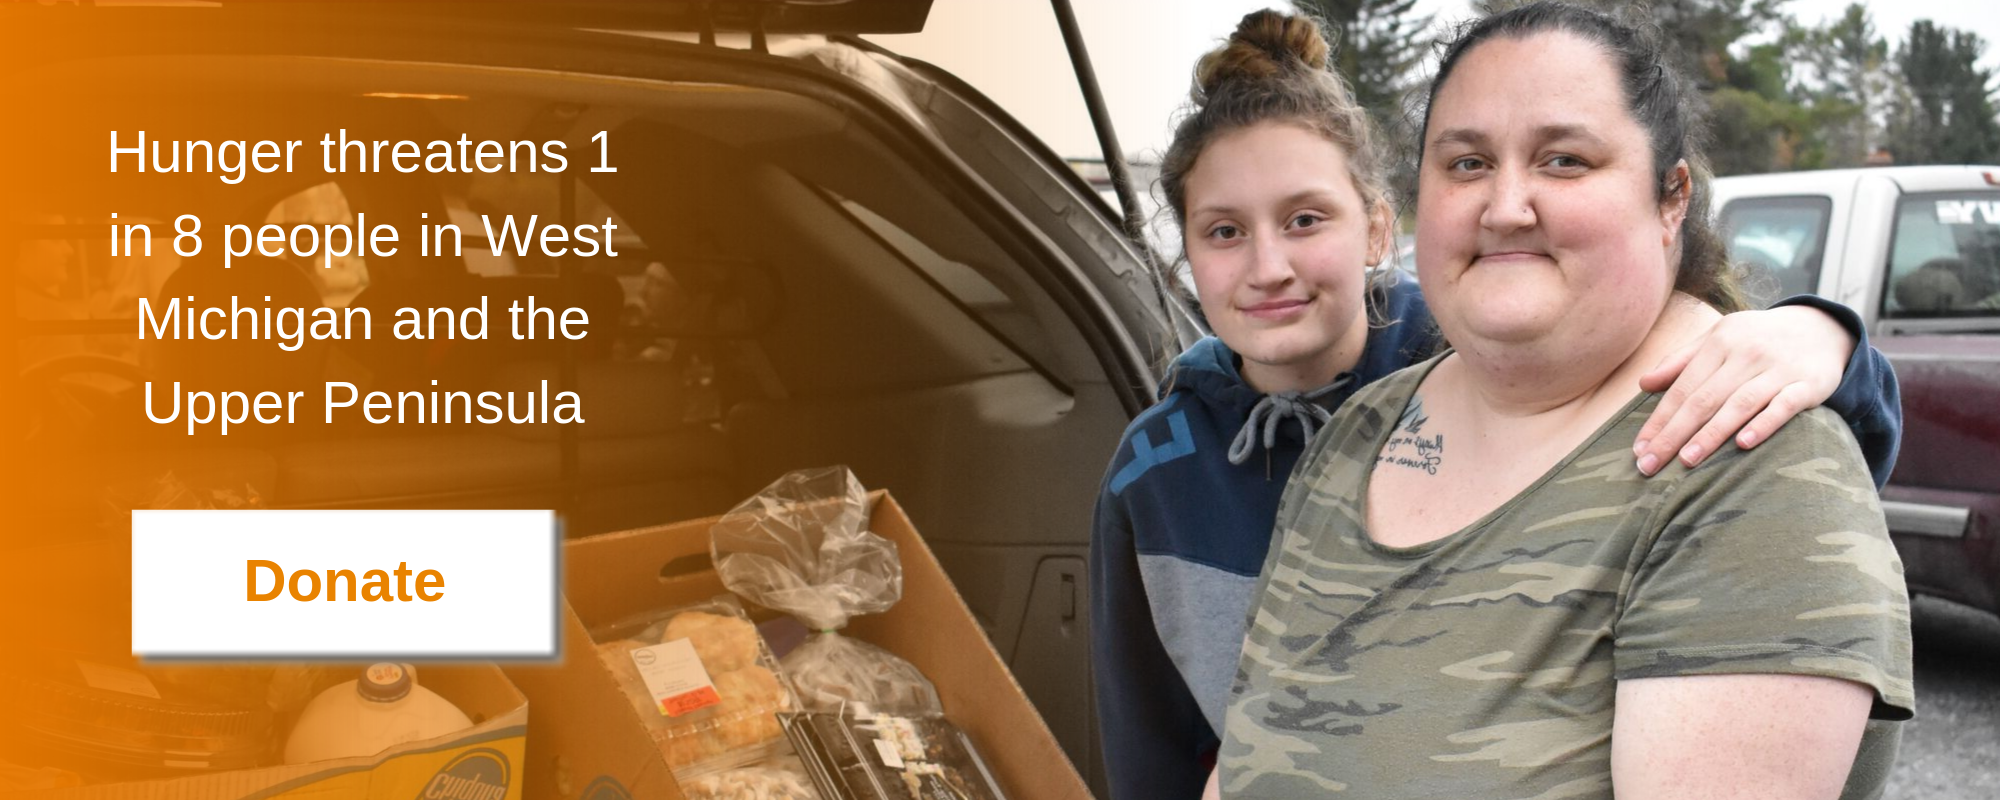 Hunger Threatens 1 in 8 people in West Michigan and the Upper Peninsula. Donate Today.